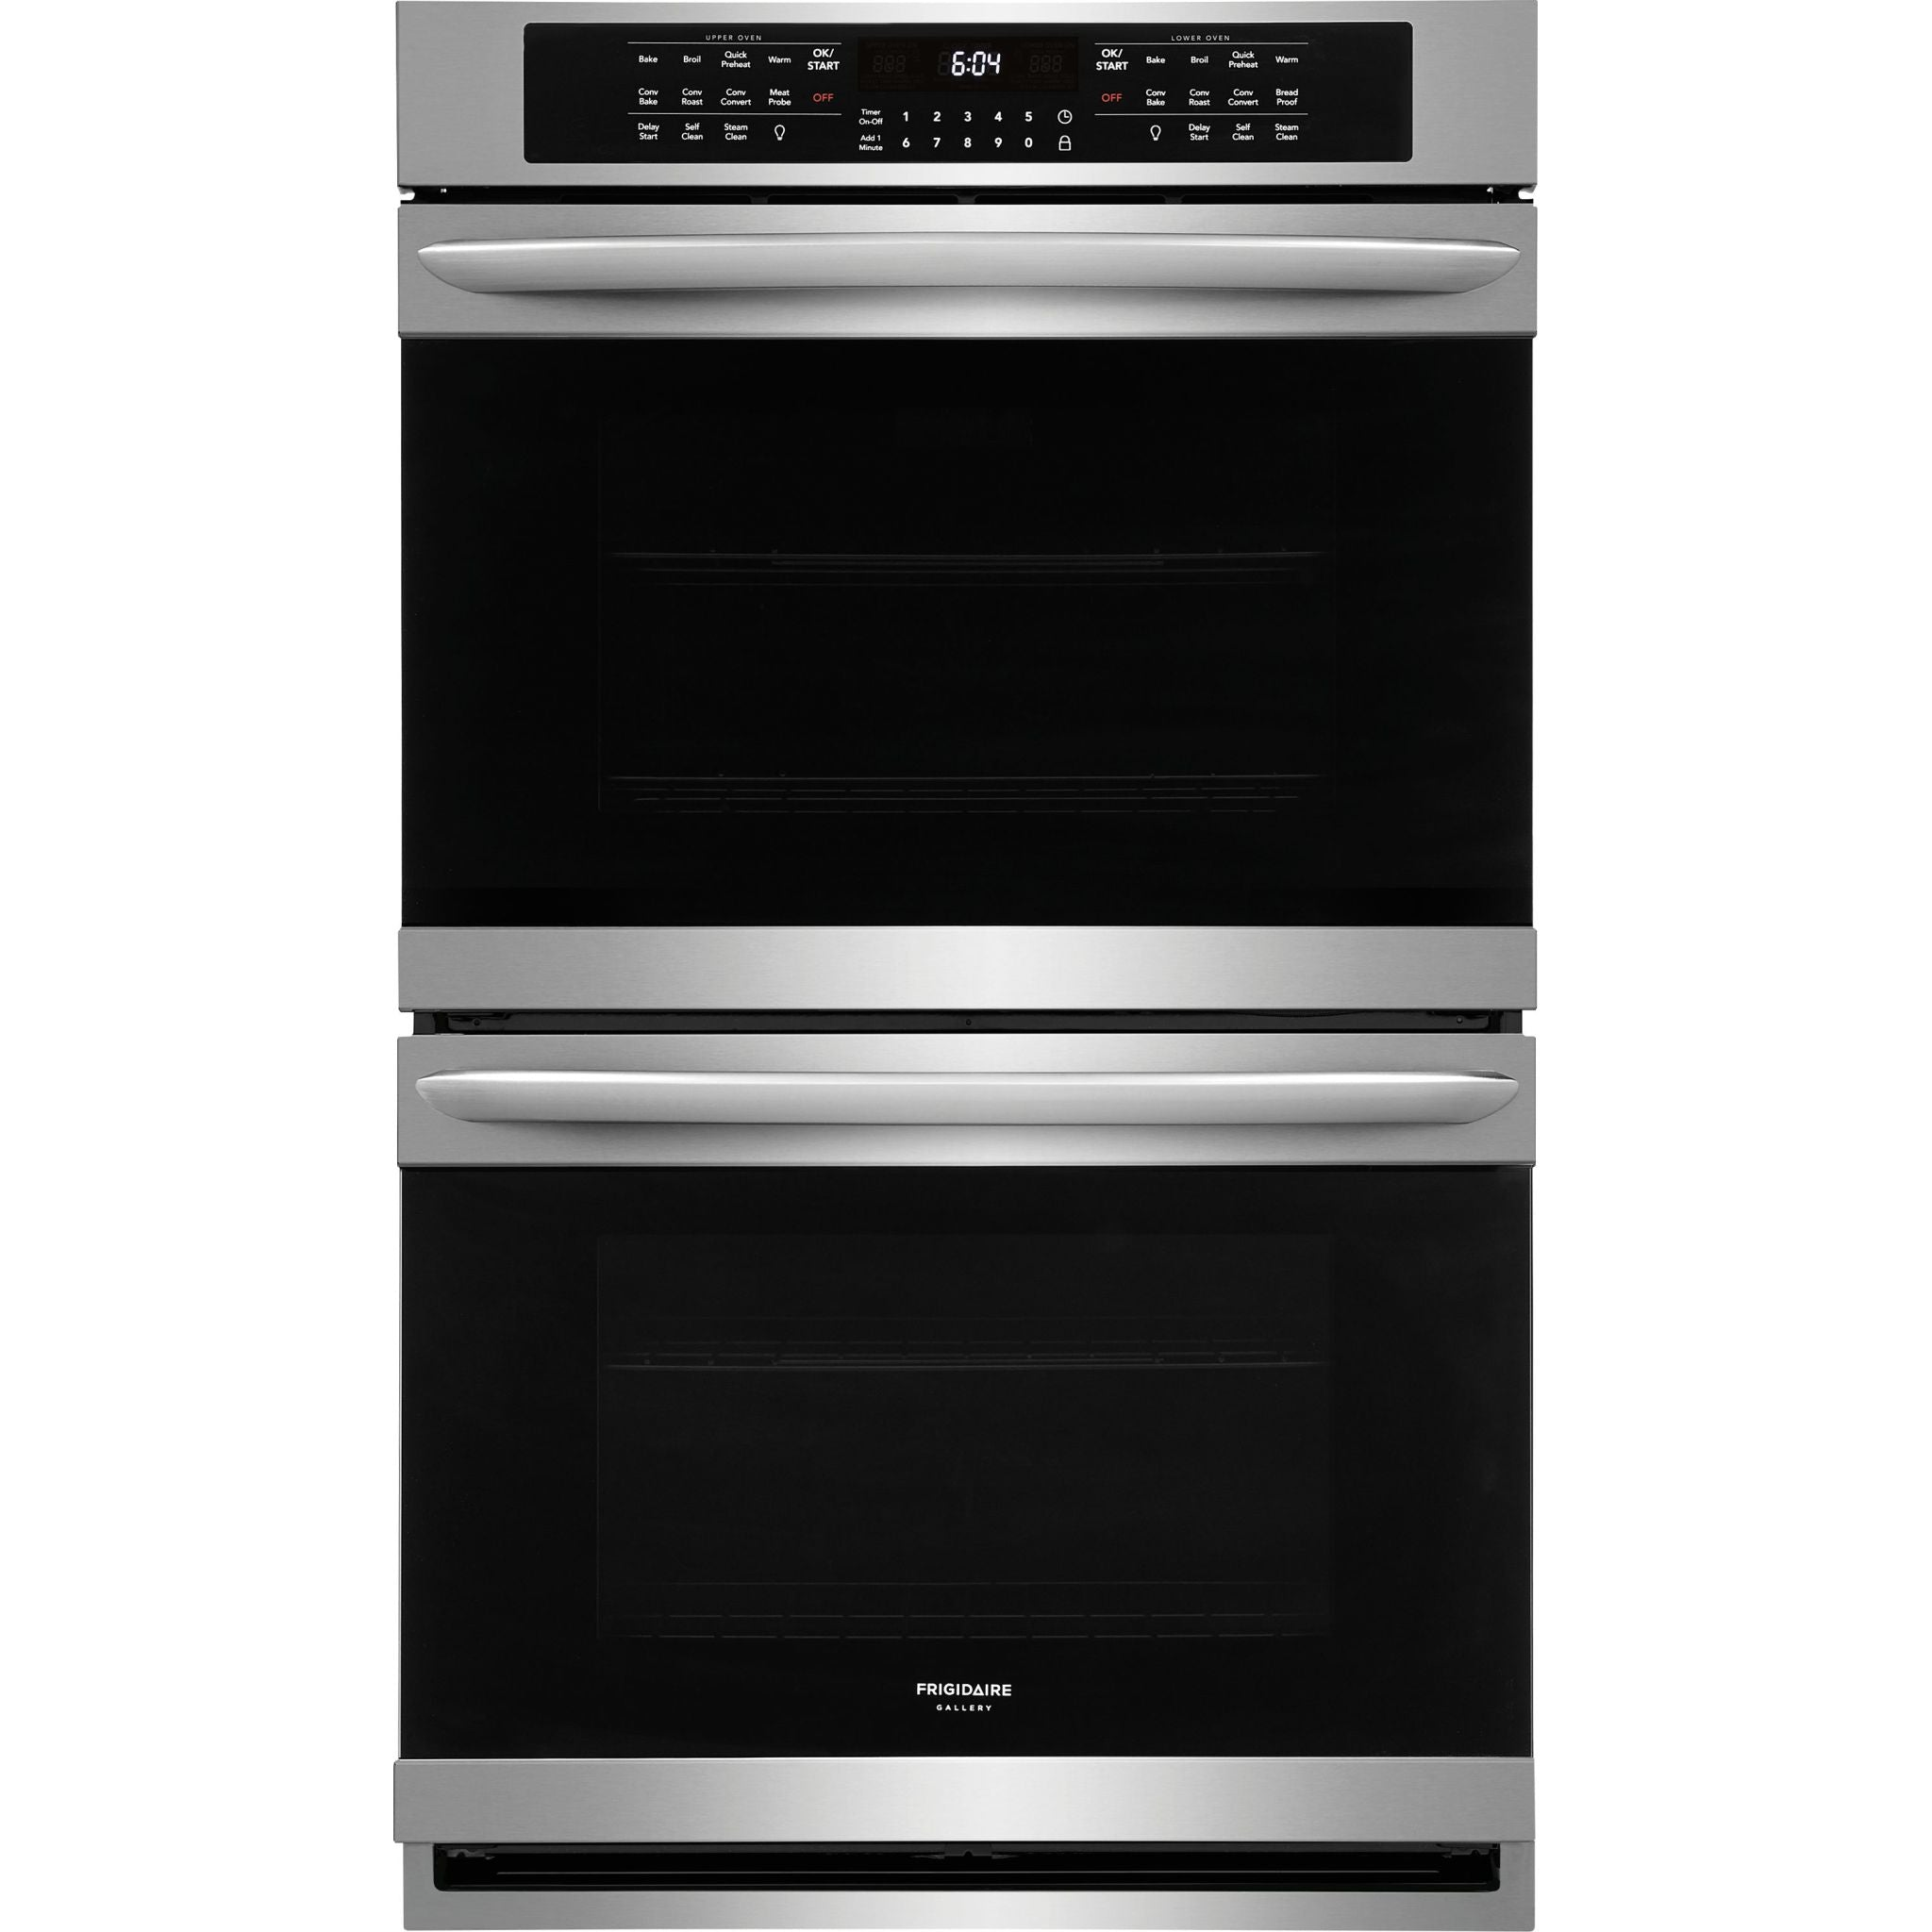 Frigidaire Gallery 30 Double Wall Oven - Stainless Steel